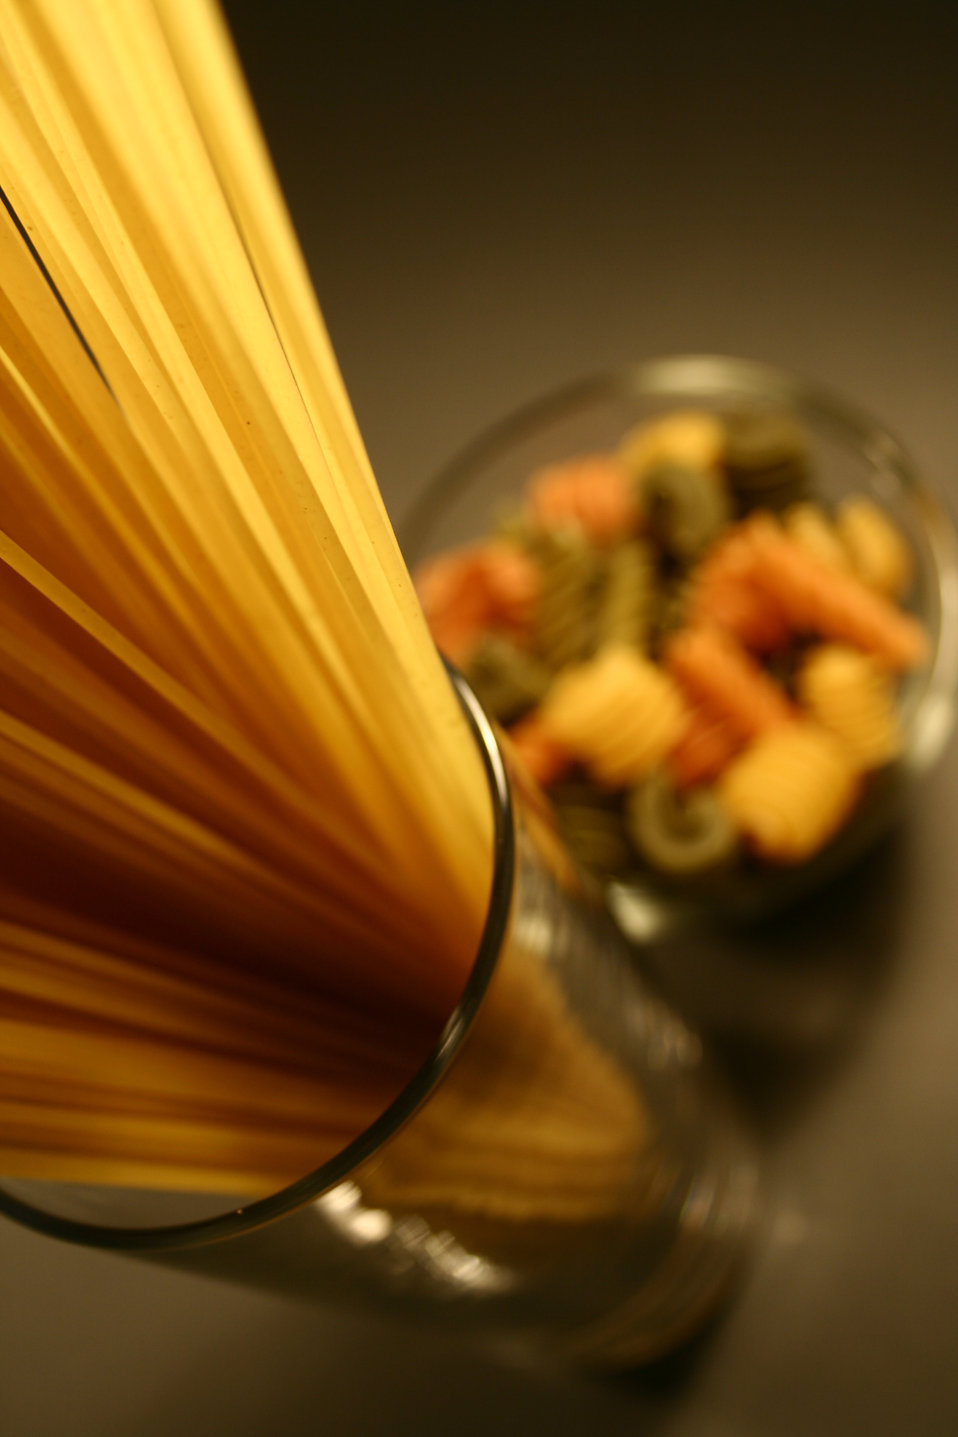 Uncooked pasta on a counter : Free Stock Photo